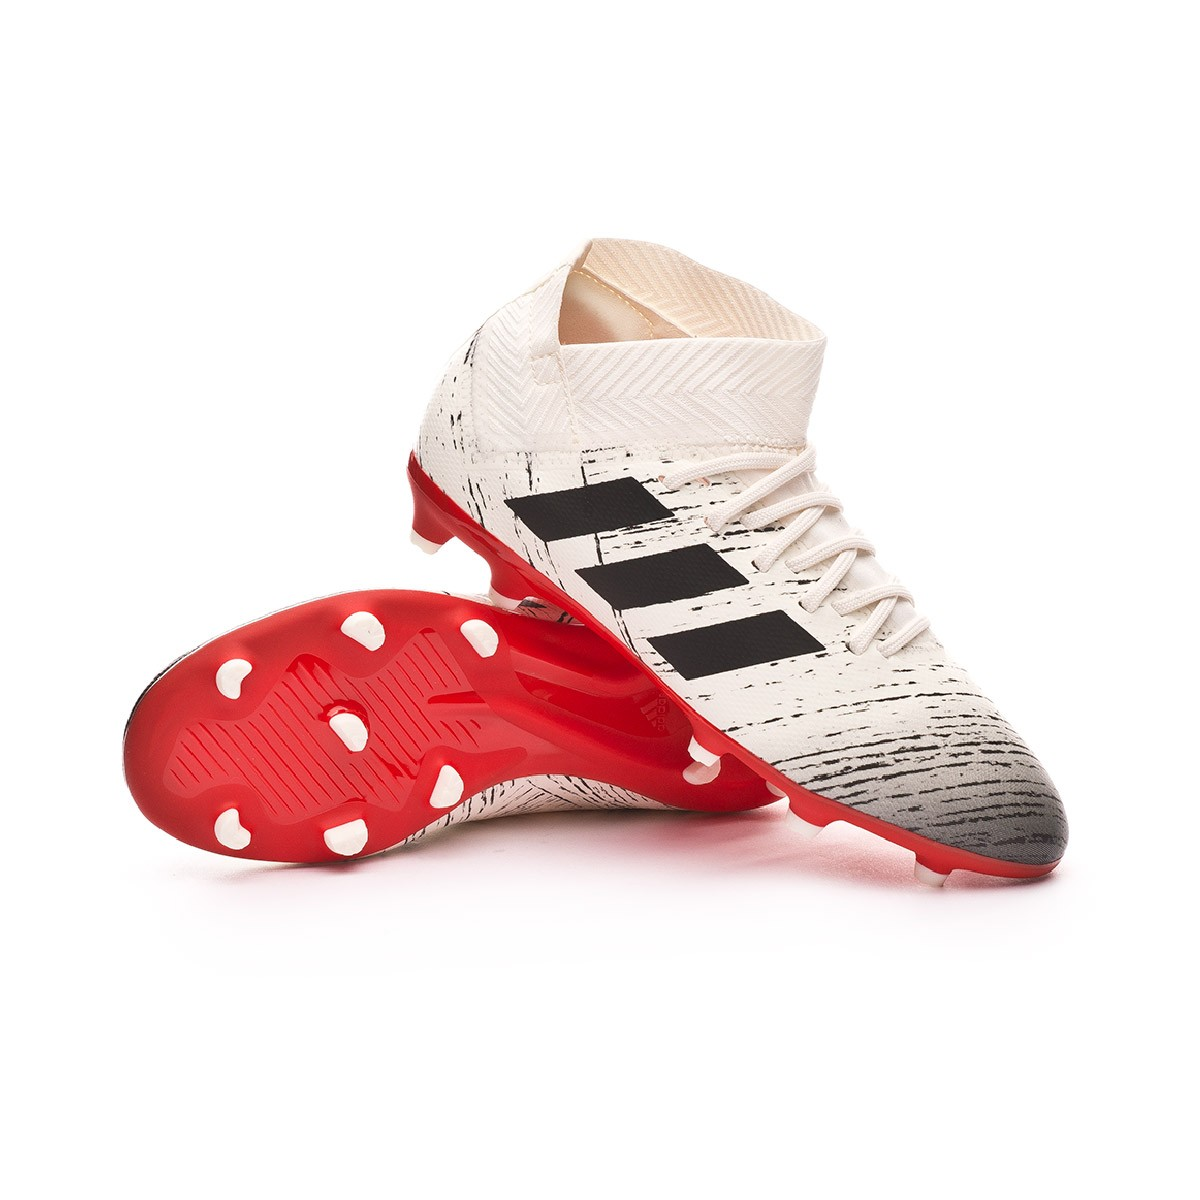 74e6f66cca2 Chuteira adidas Nemeziz 18.3 FG Niño Off white-Core black-Active red - Loja  de futebol Fútbol Emotion